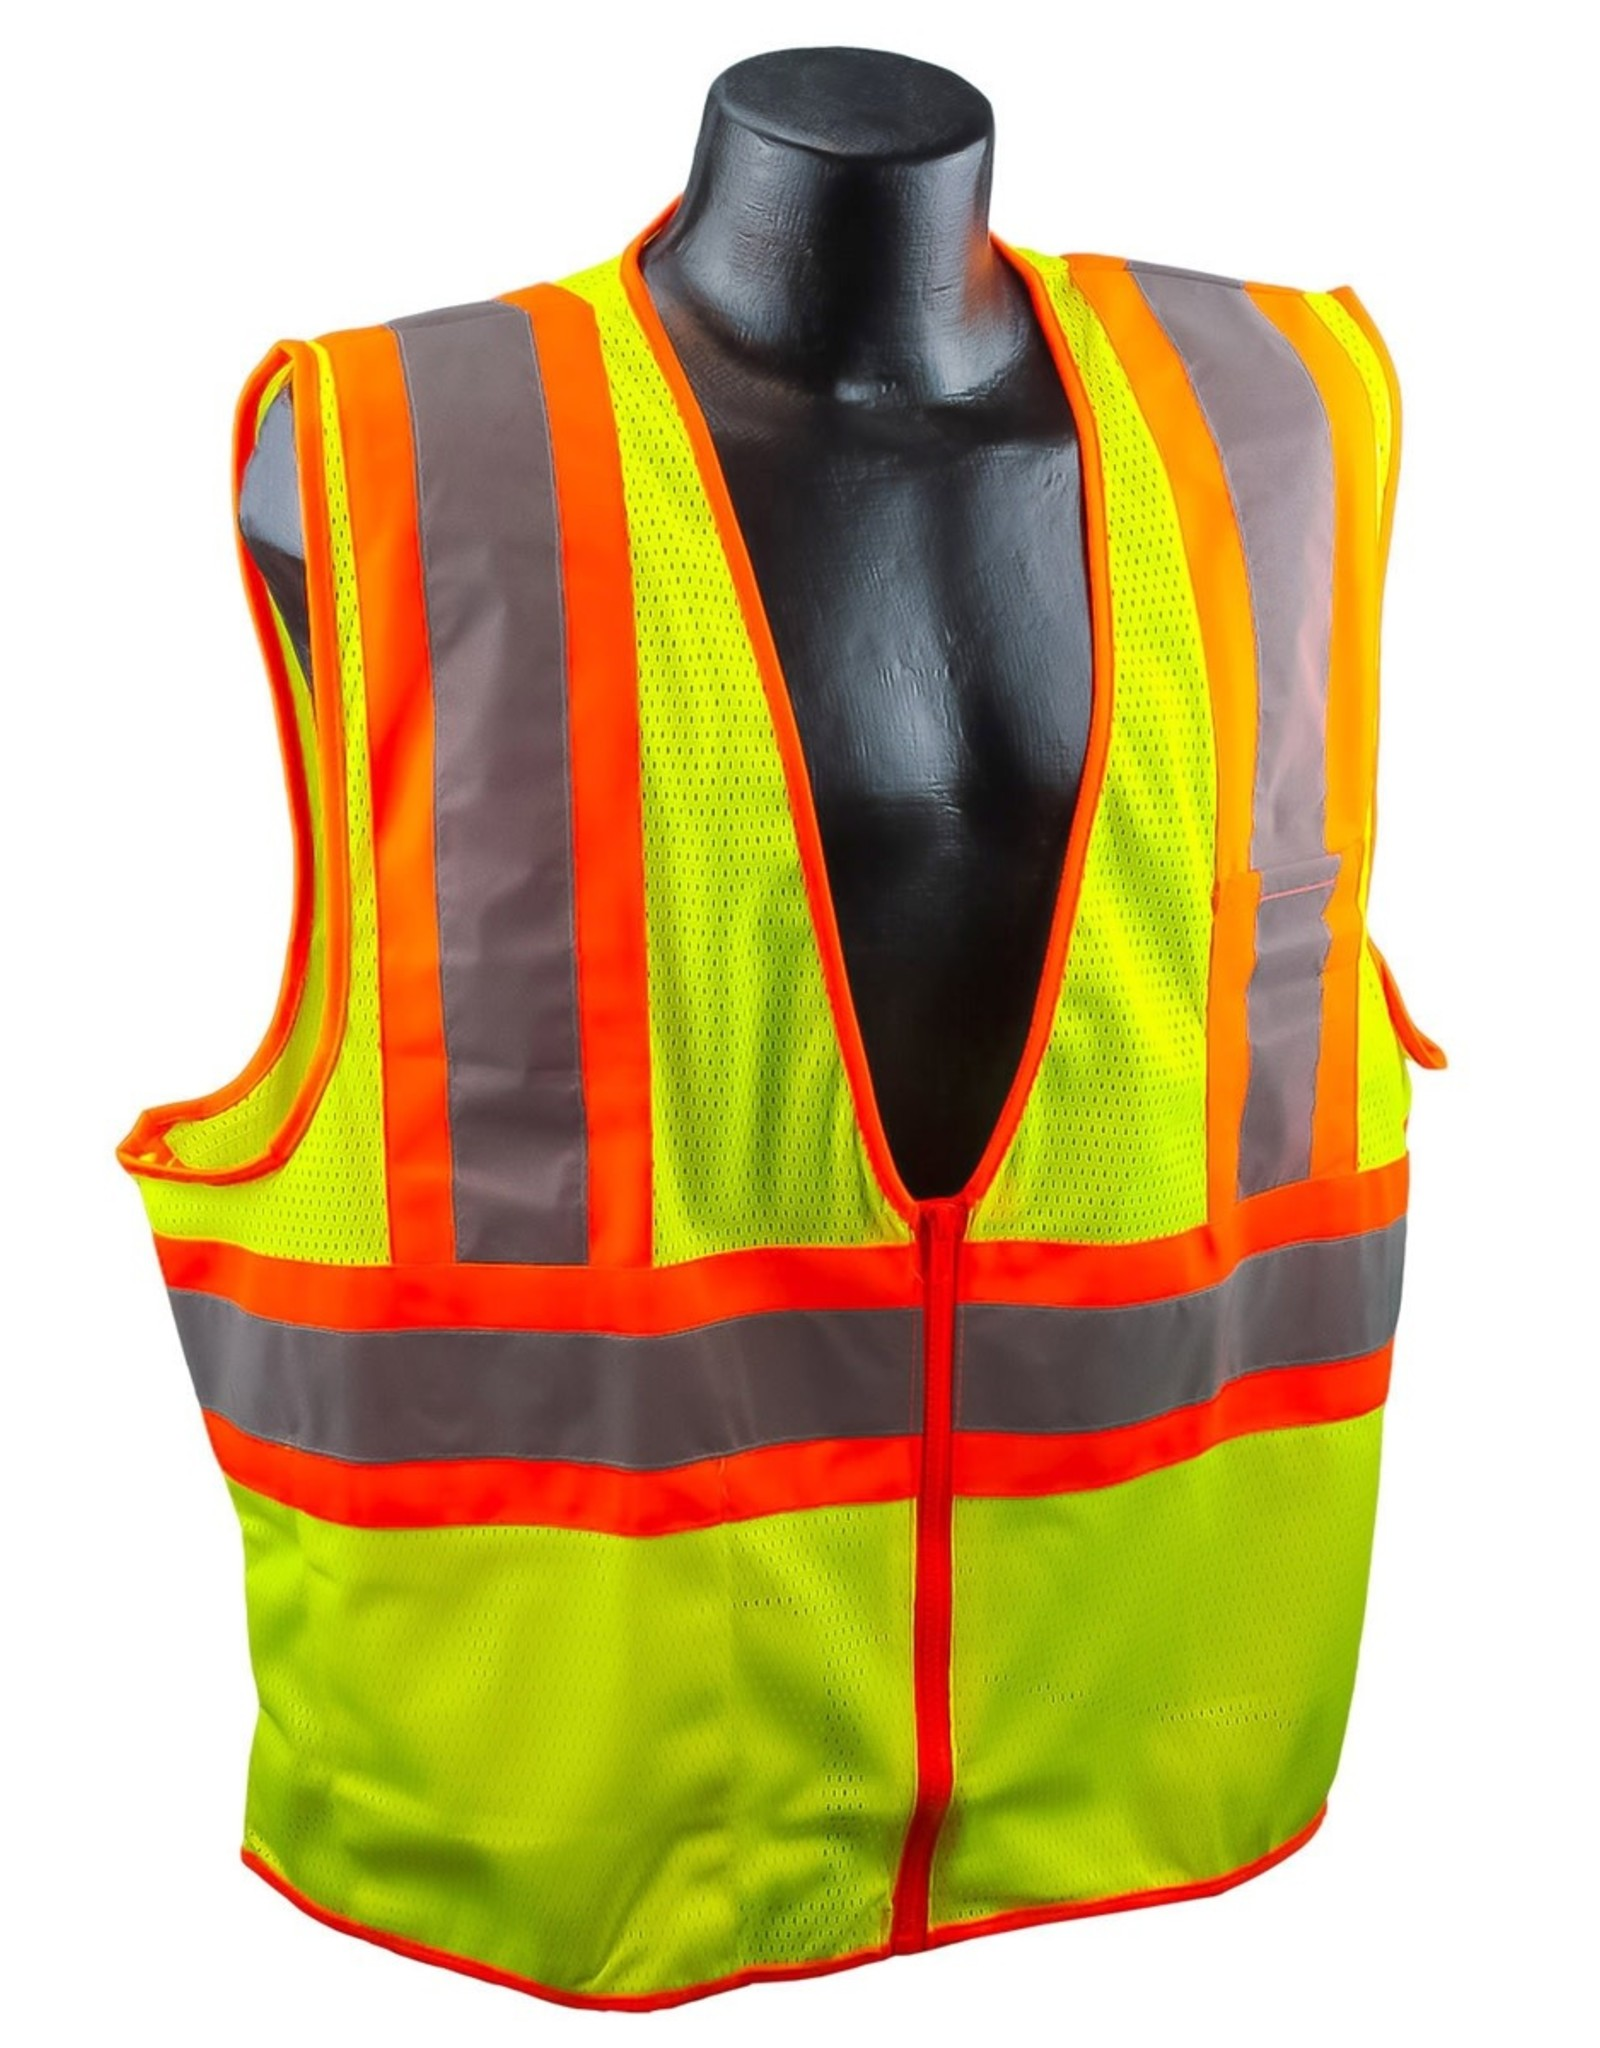 Seattle Safety Vest, Yellow Mesh Class II, Reflective Tape, Various Sizes